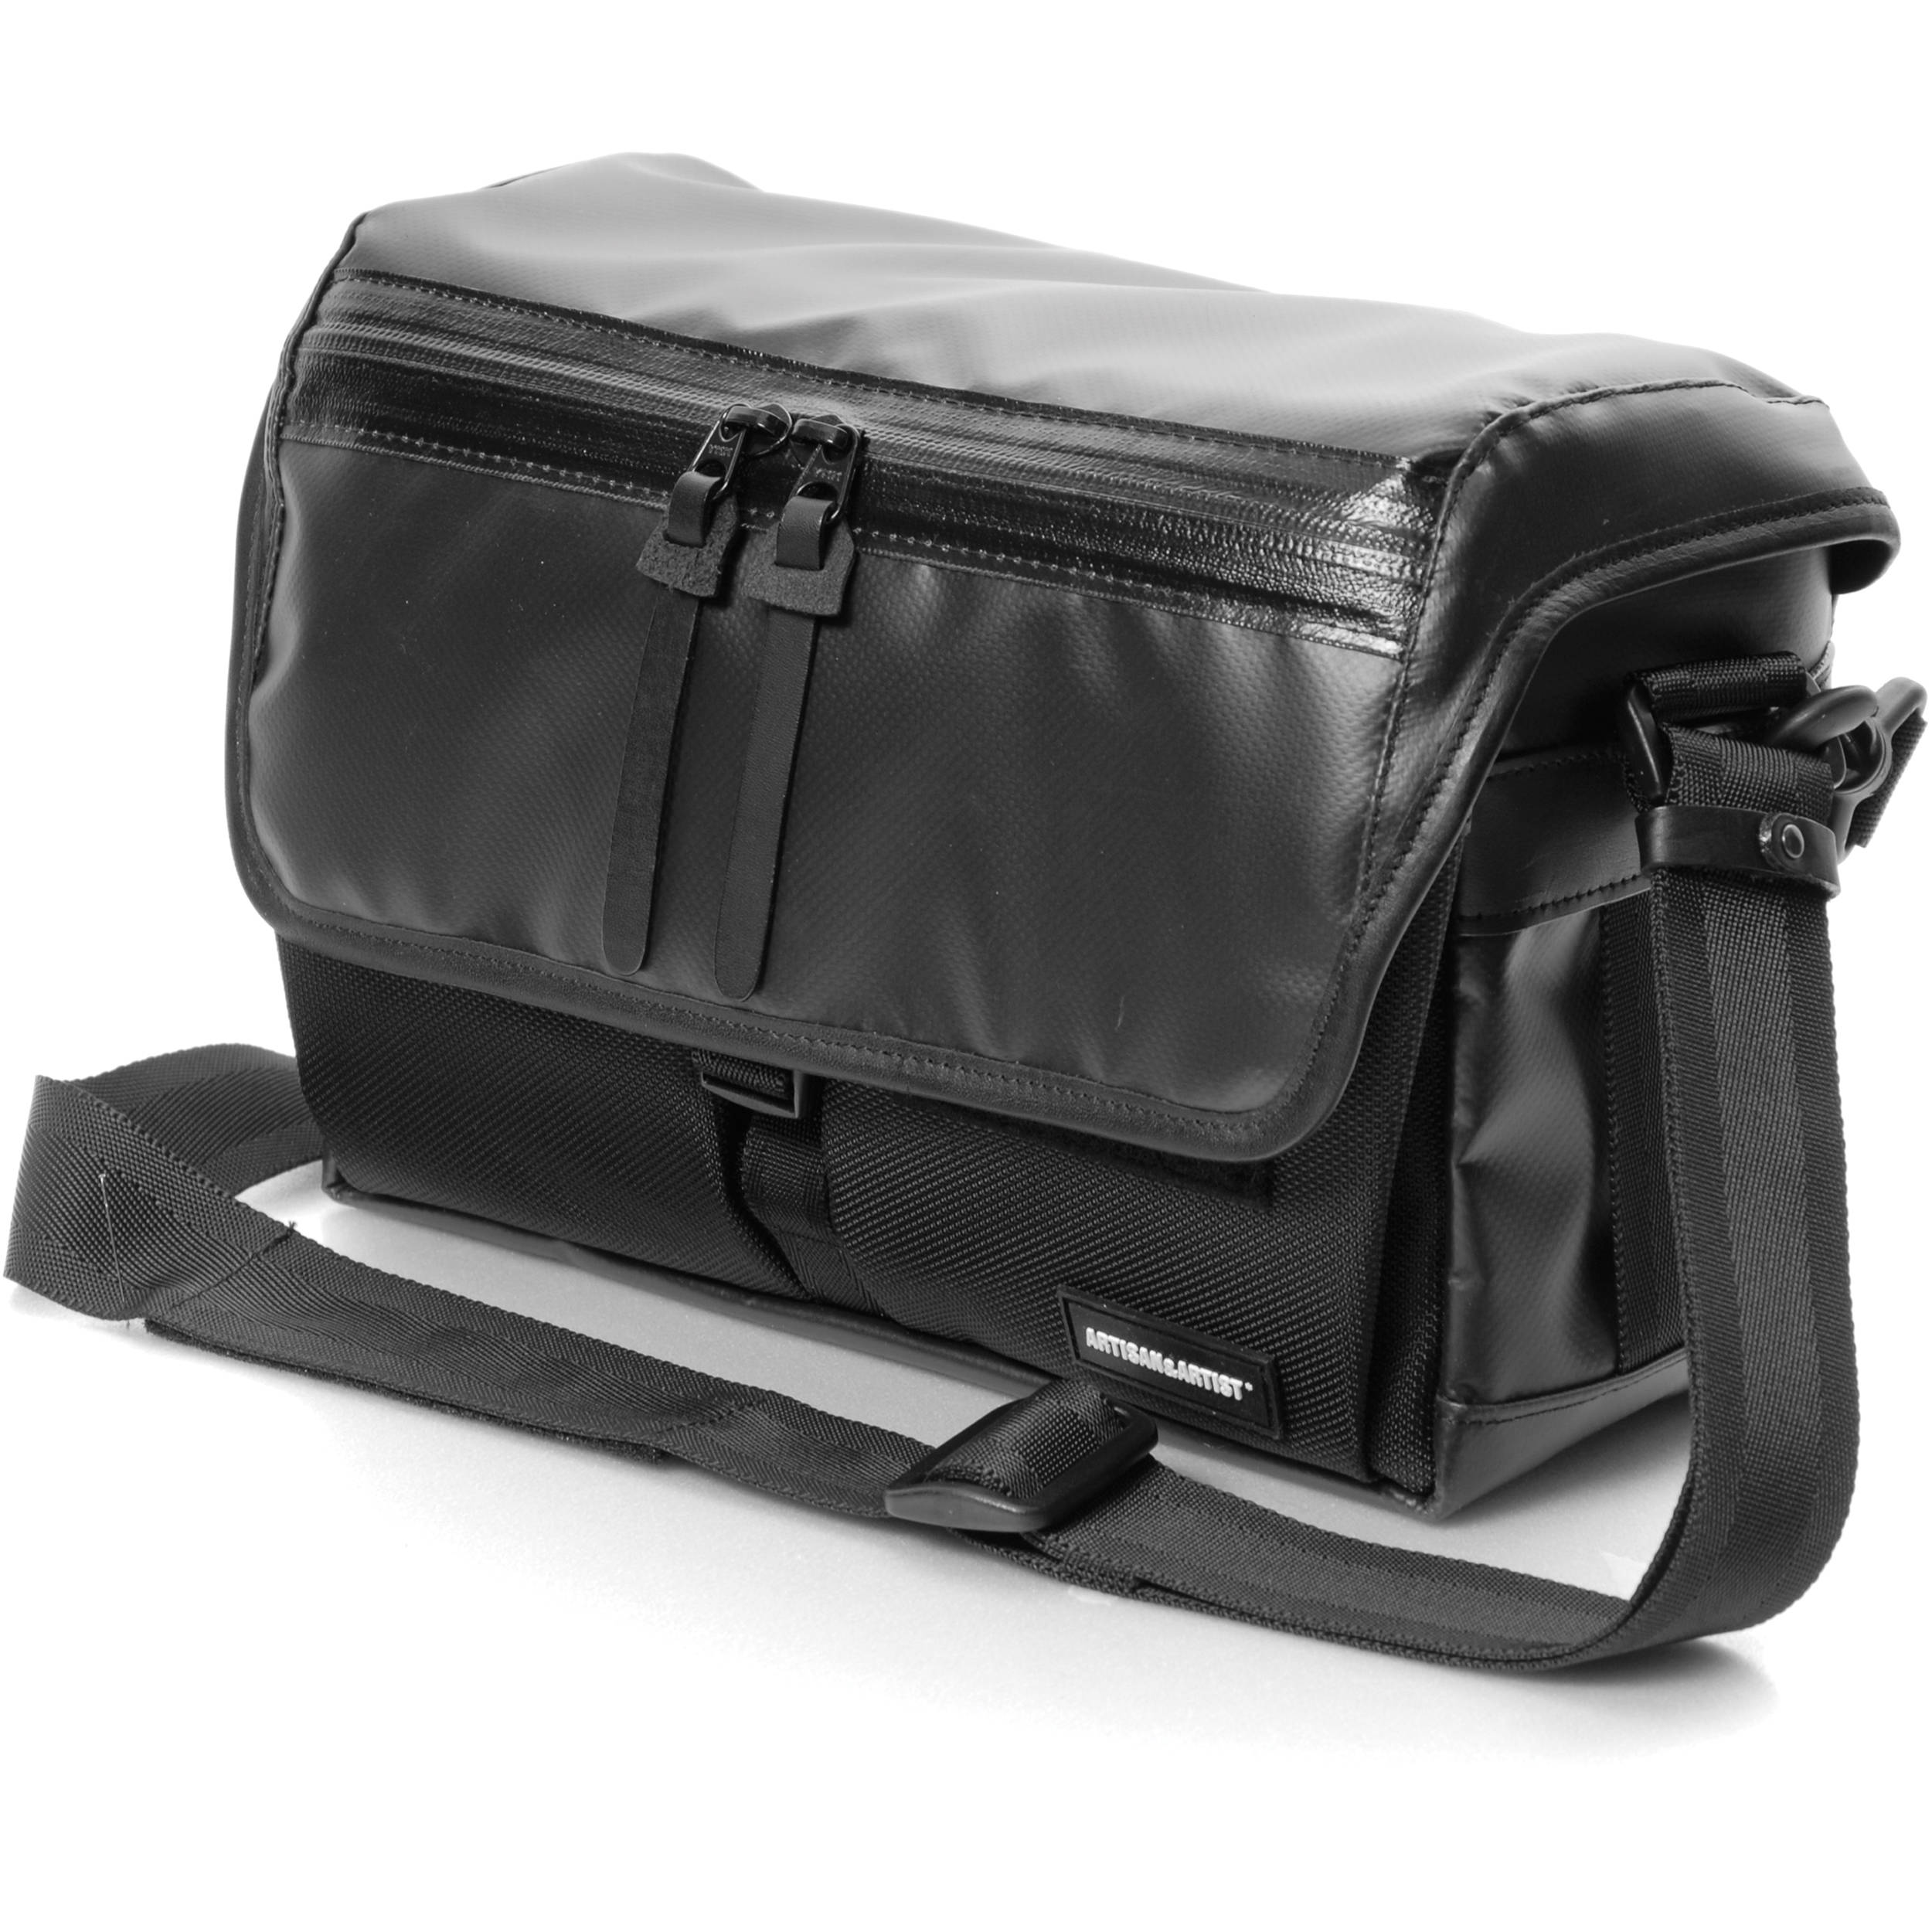 Artist Wcam 7500 Waterproof Camera Bag